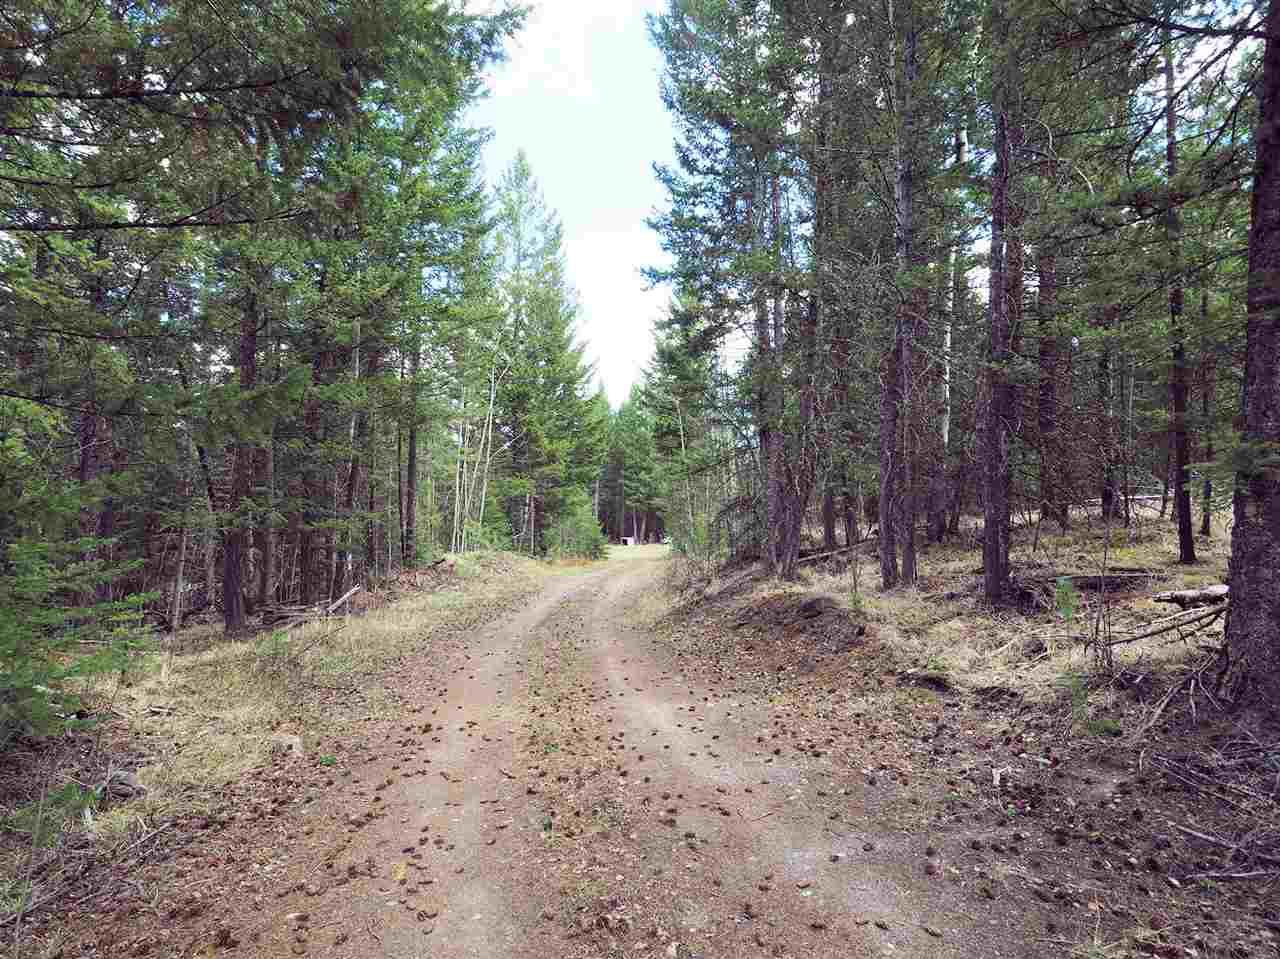 Main Photo: 6099 HORSE LAKE Road: Horse Lake Land for sale (100 Mile House (Zone 10))  : MLS®# R2455917